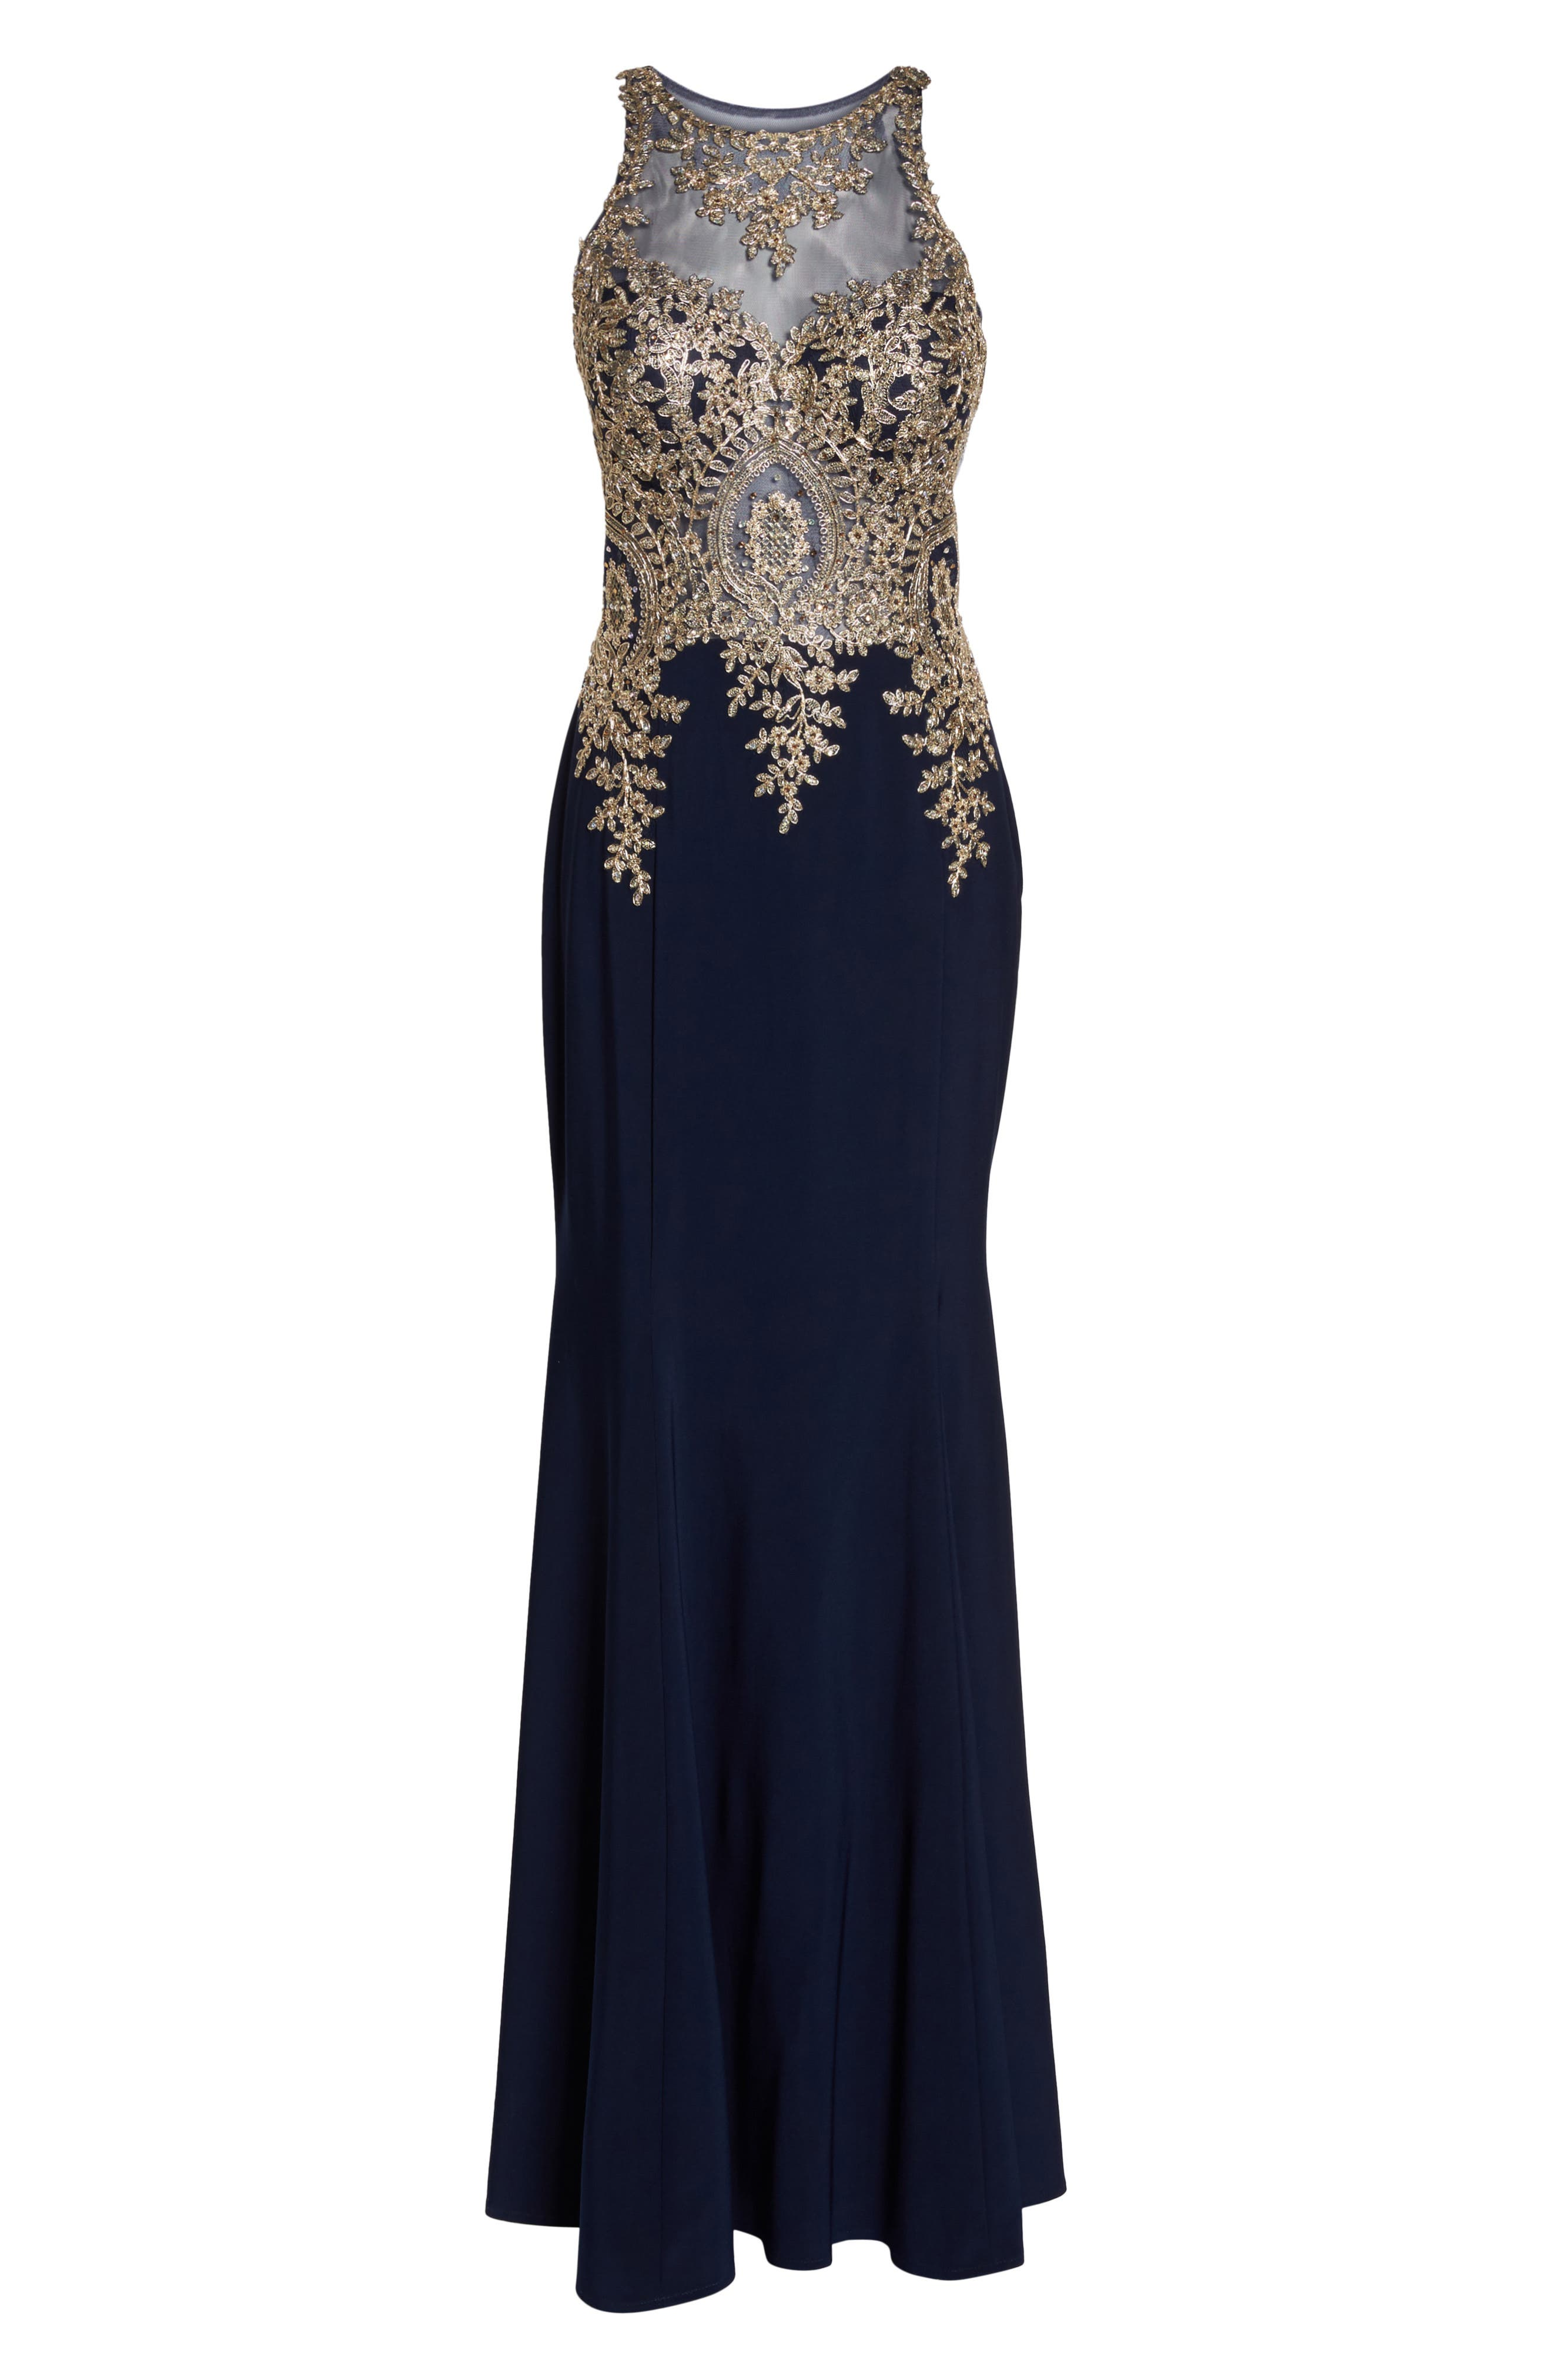 Embellished Mermaid Gown,                             Alternate thumbnail 6, color,                             Navy/ Gold